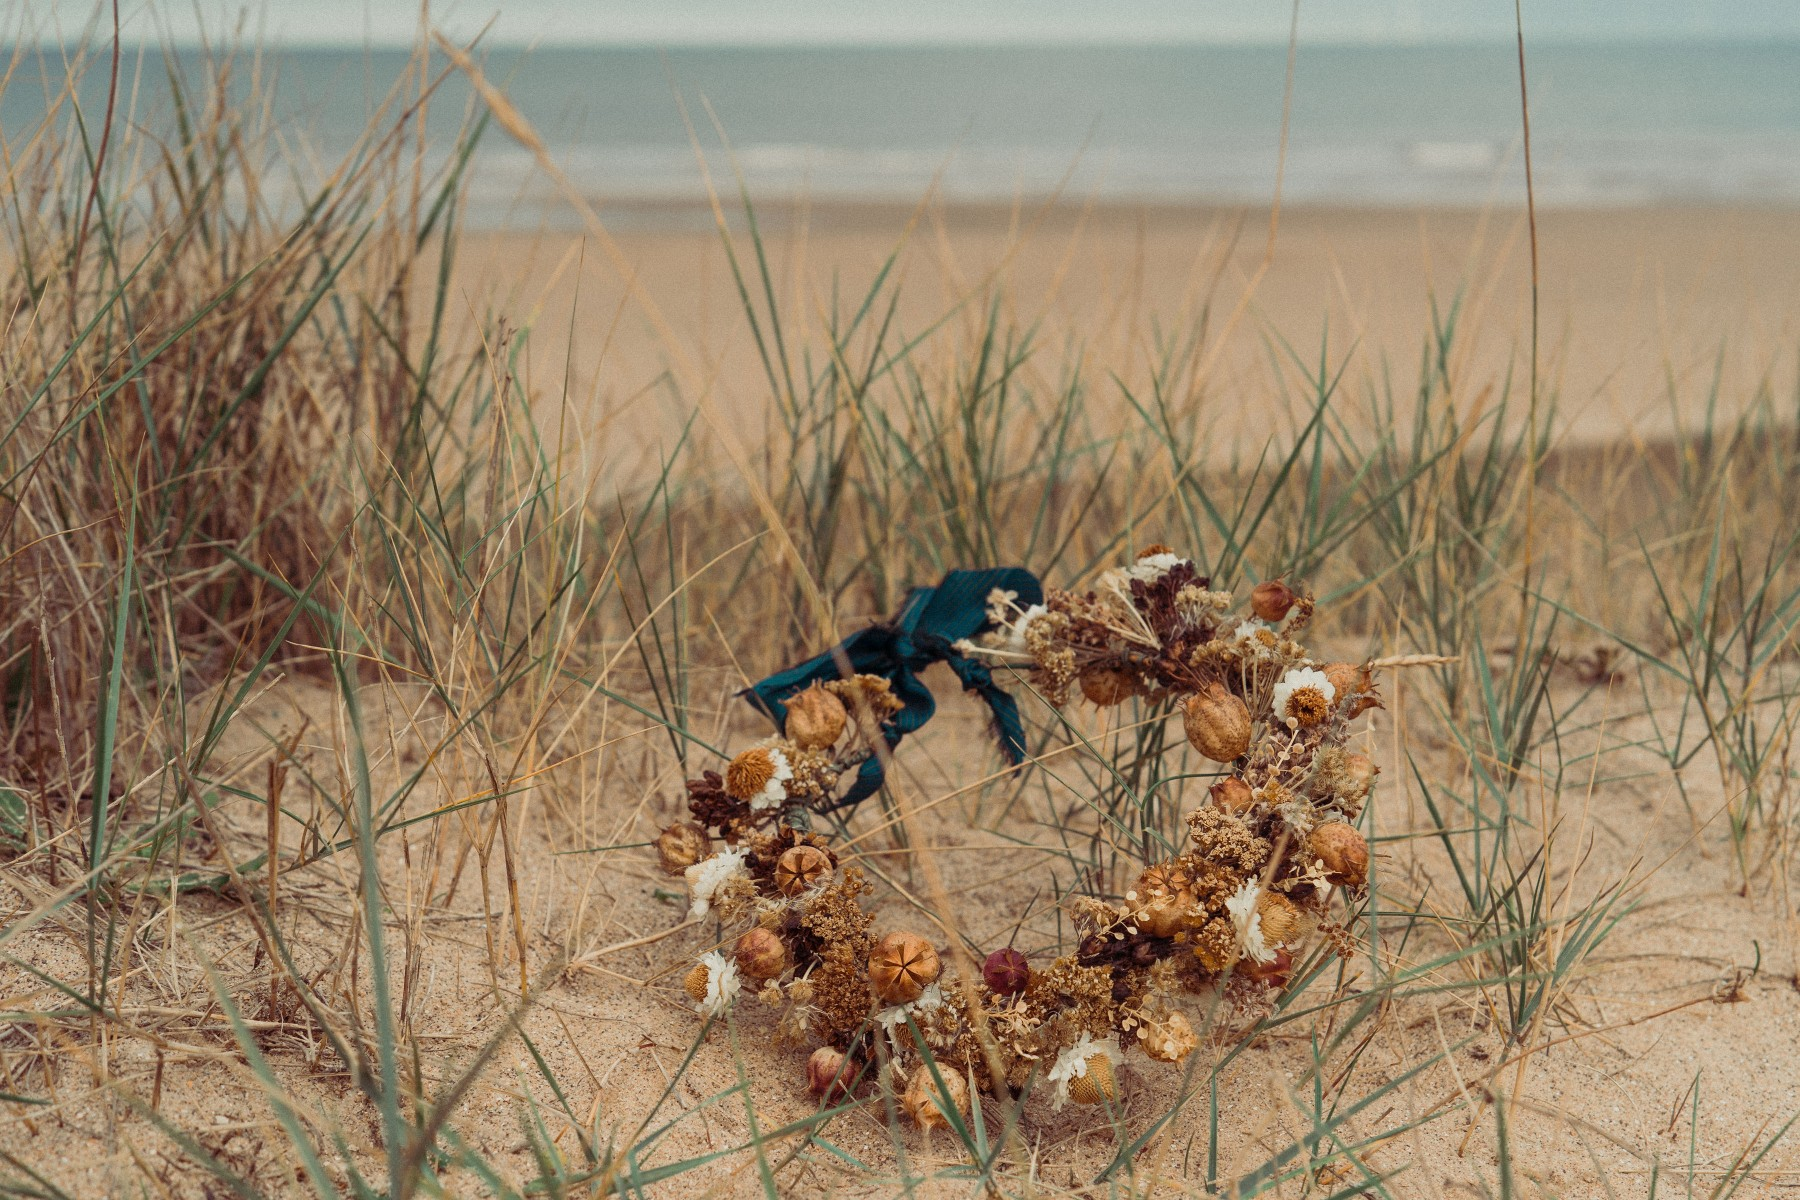 beach elopement - beach wedding - eco friendly wedding -tempest themed wedding - unique wedding bouquet - dried wedding bouquet - autumn wedding flowers